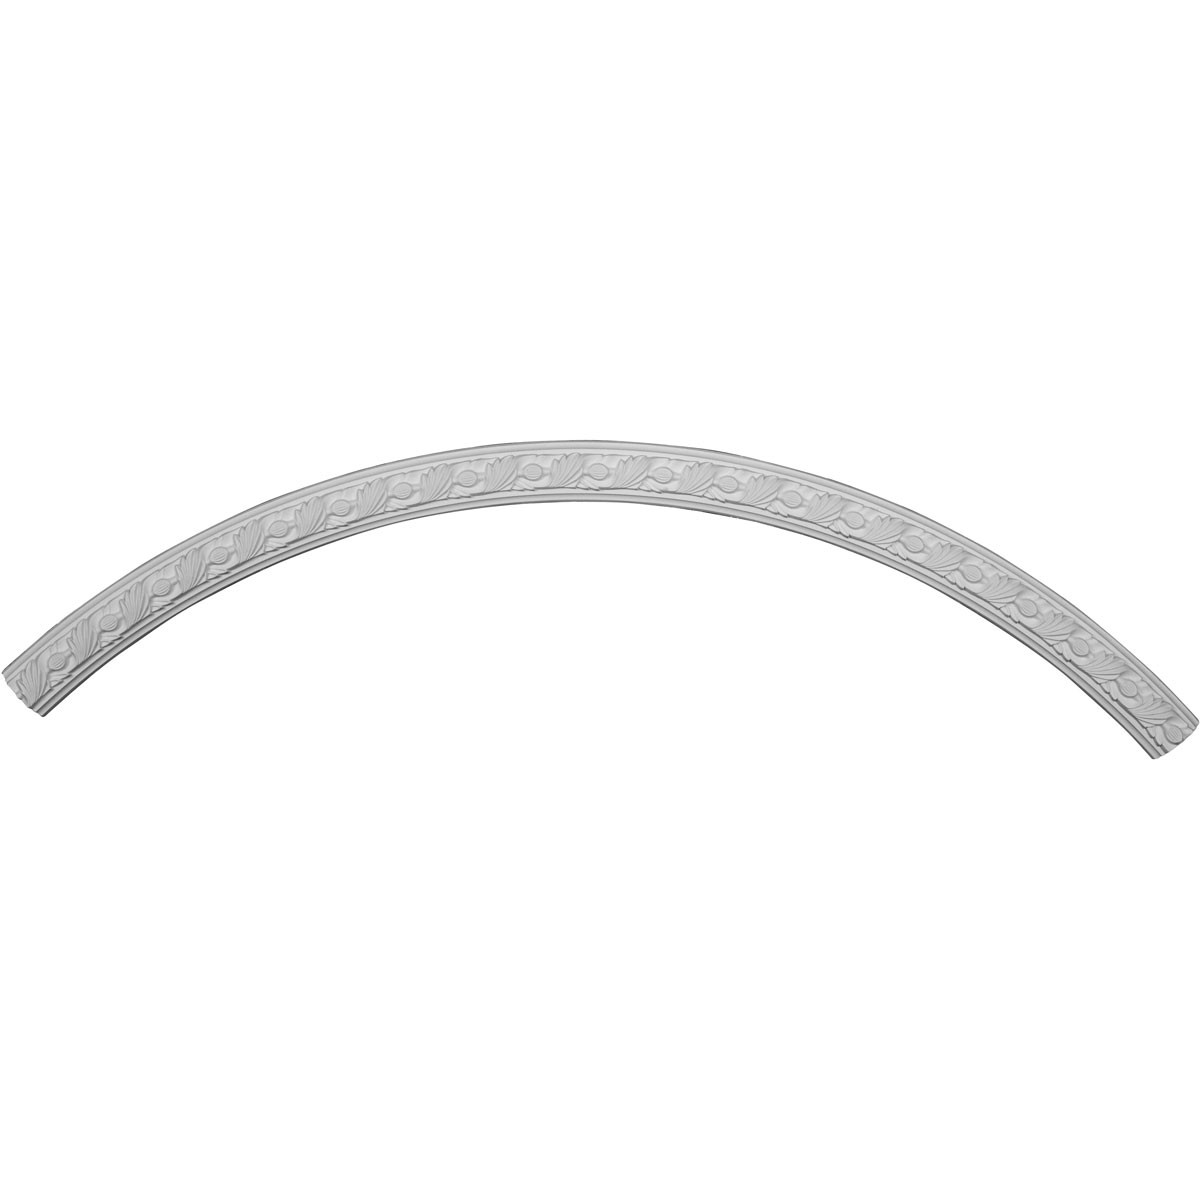 """EM-CR59MI - 59 3/8""""OD x 55 1/8""""ID x 2 1/8""""W x 7/8""""P Milton Ceiling Ring (1/4 of complete circle)"""